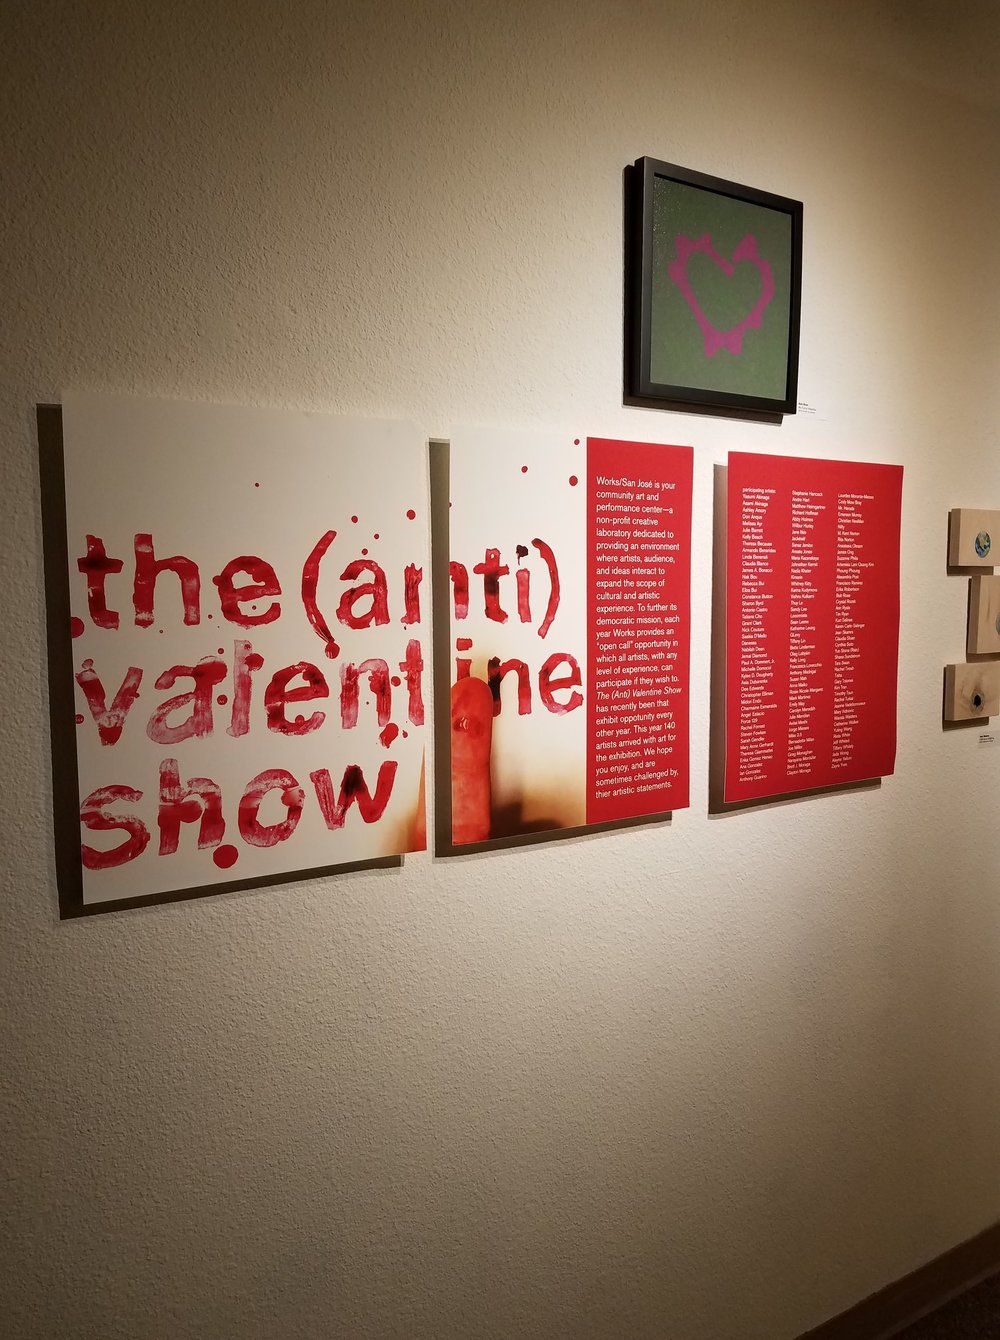 - The (Anti) Valentine Show returns with a vengeance! 140 local artists have responded to the call for art (un)inspired by romance. From anti-love, to anti-hypocricy, anti-commercialization, anti-objectivization, and more, The (Anti) Valentine Show reflects the heart-felt to heart-wrenching angst of our time and place.Opening Reception:Friday, February 2 at 7 PM - 11 PMShow runs through February 18, 2018Works/San José 365 S Market St, San Jose, California 95113 Media: